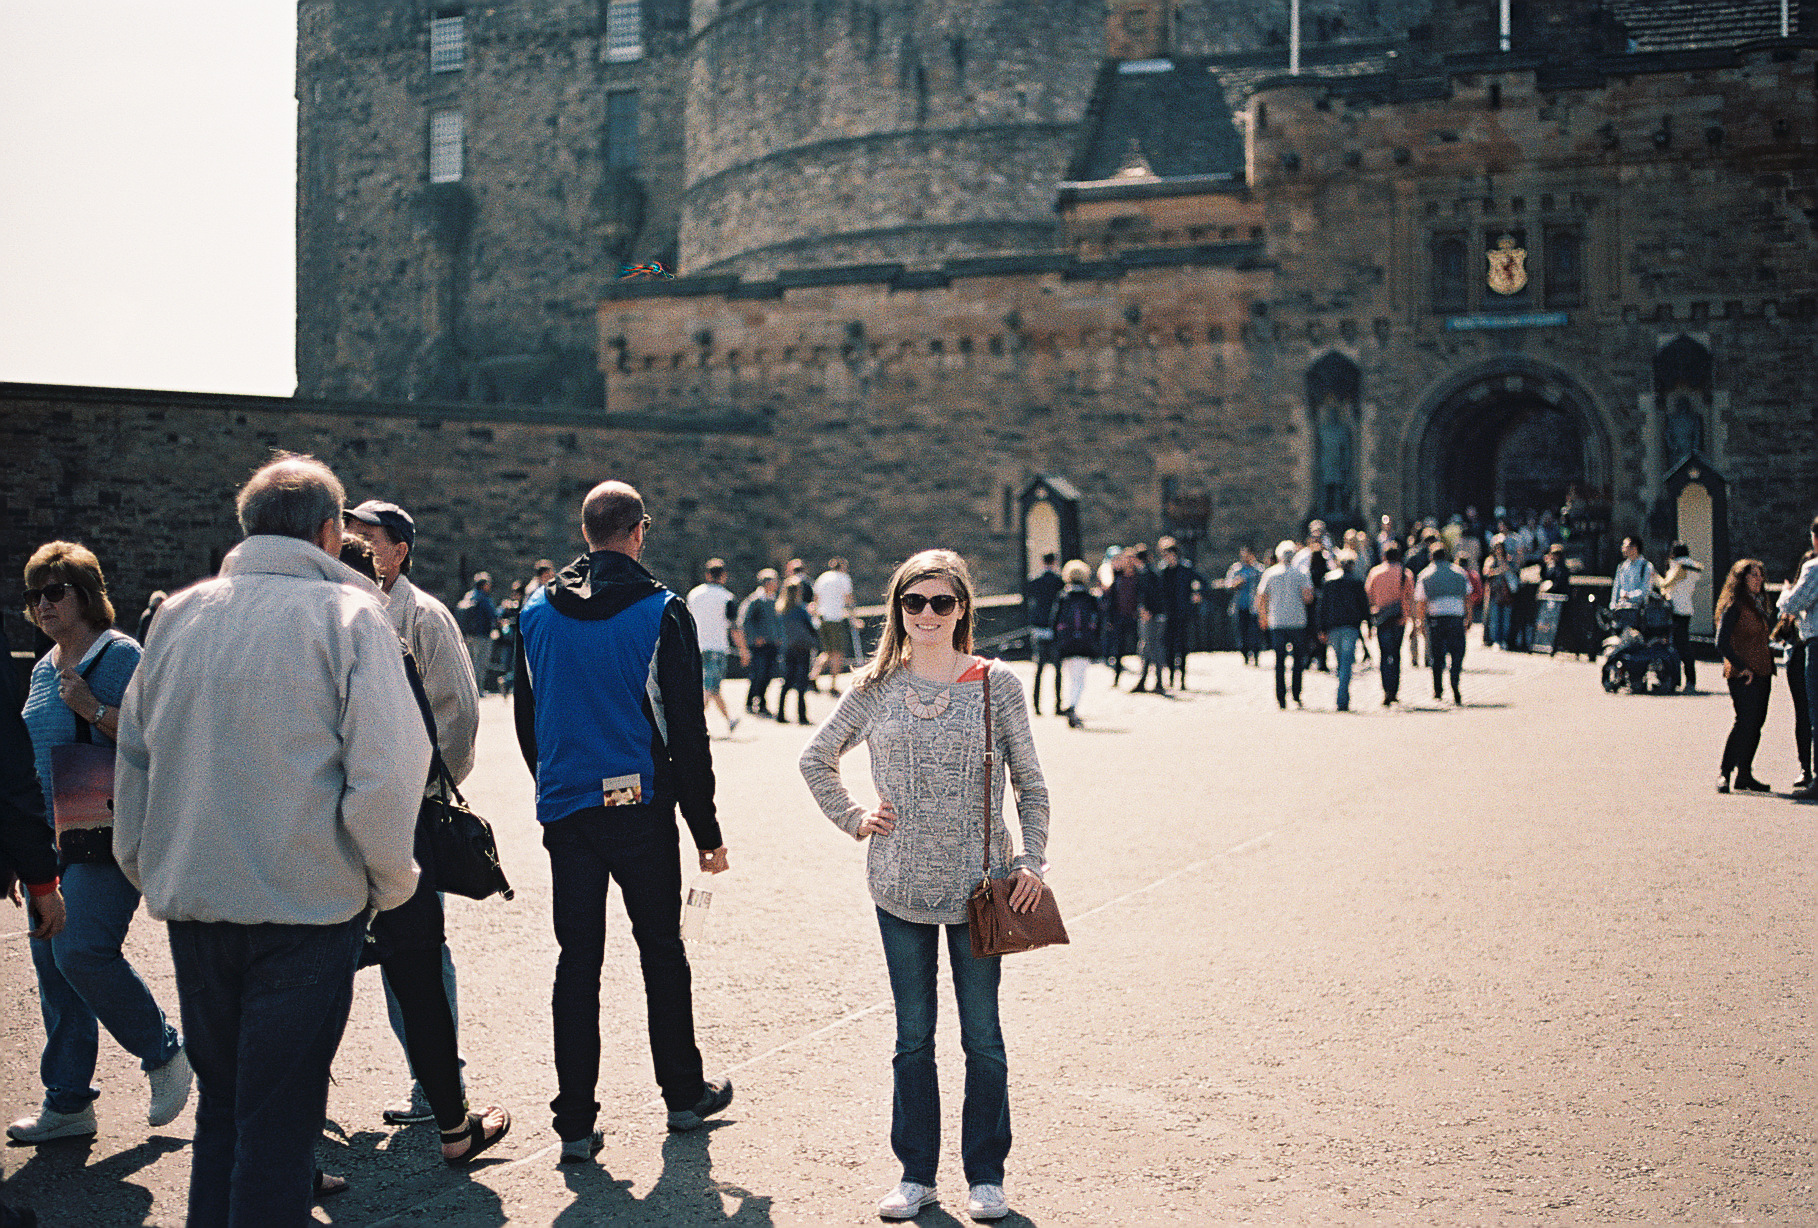 edinburgh-castle-entrance-scotland-european-honeymoon-35mm-film